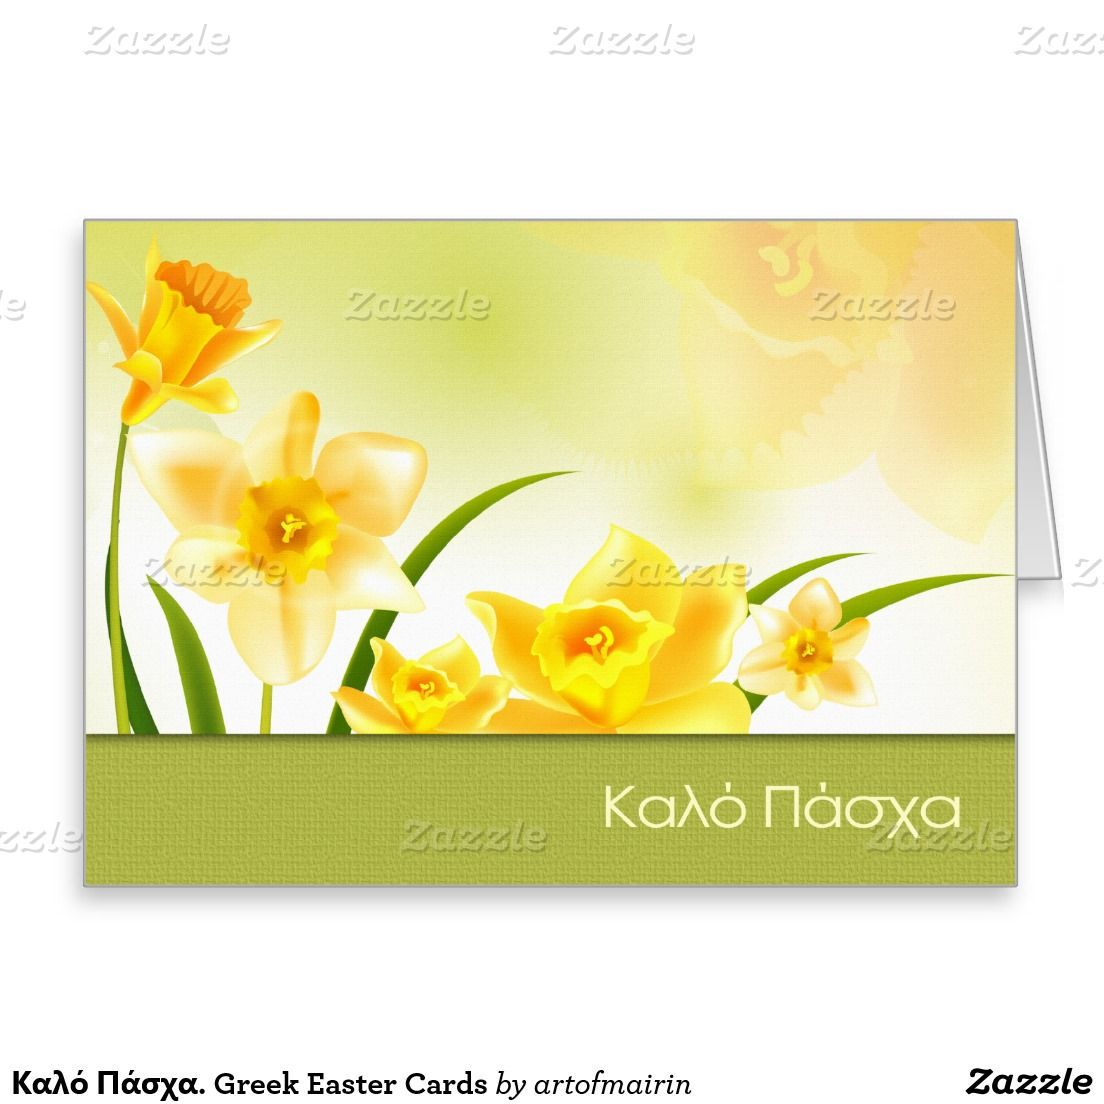 spring daffodils customizable easter greeting card in spring daffodils customizable easter greeting card in greek matching cards in various languages postage stamps and other products available m4hsunfo